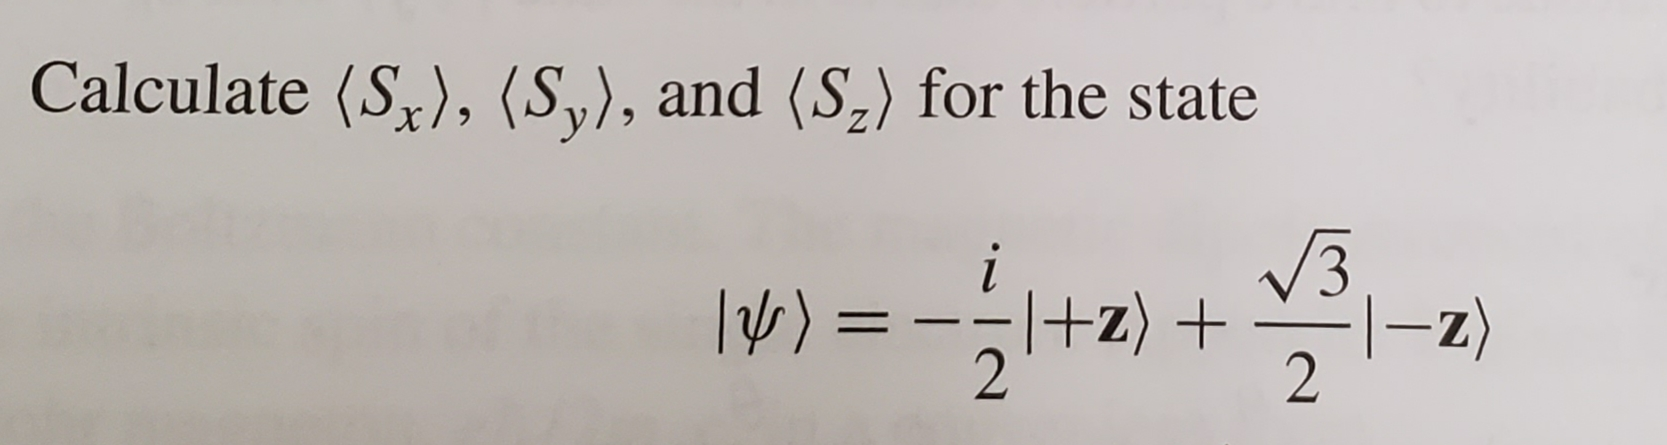 Calculate (S), (Sy), and (S2) for the state 3 +z) + -z) 2 2